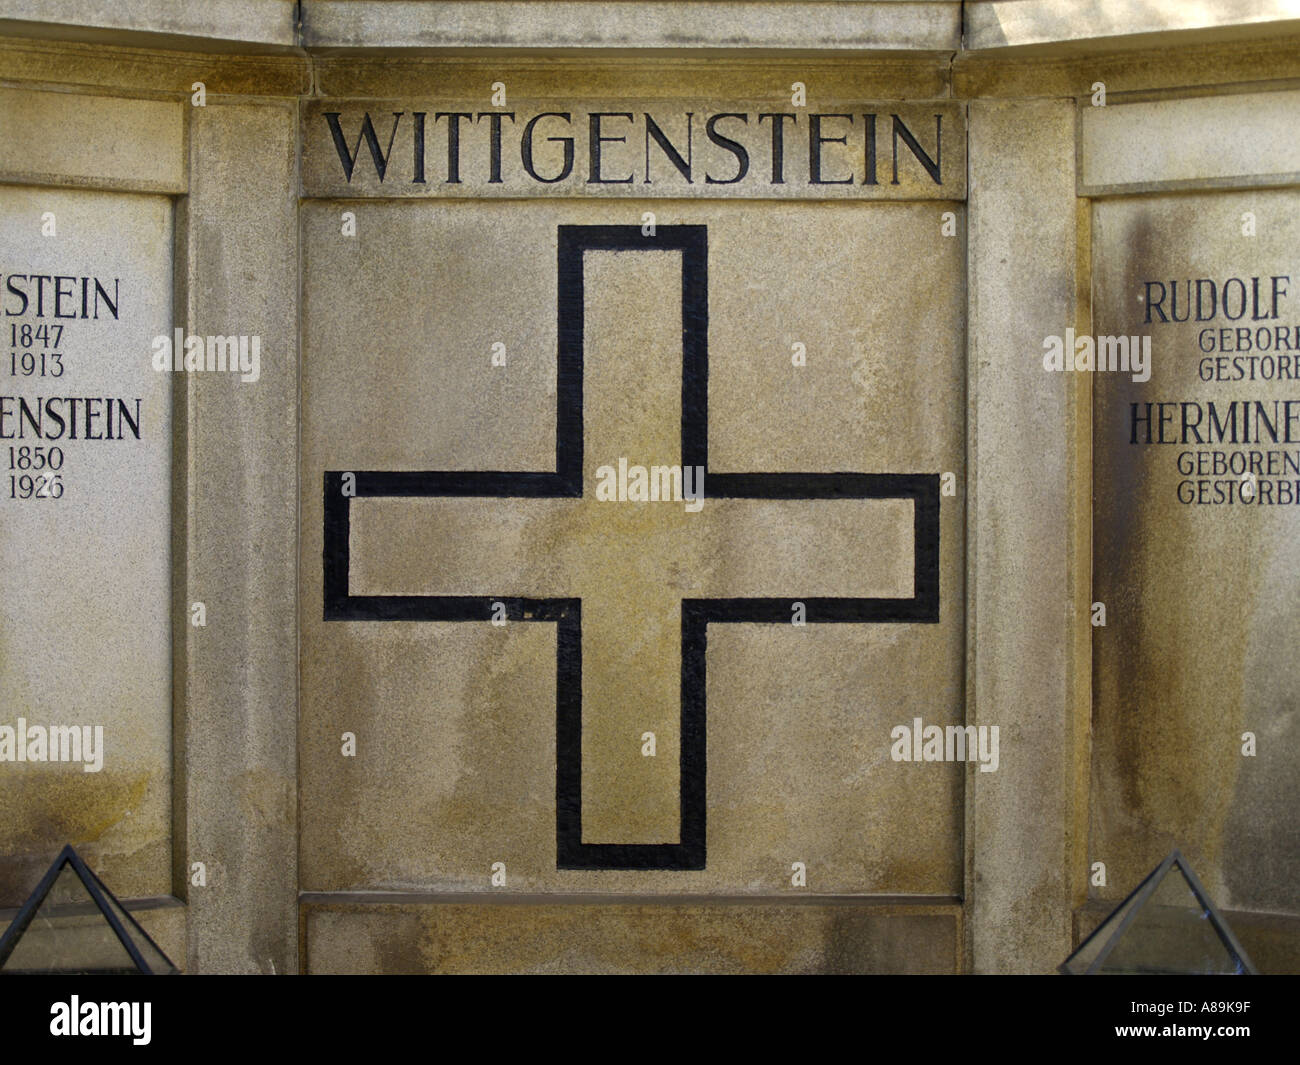 Vienna, central cemetery grave of Ludwig Wittgenstein - Stock Image